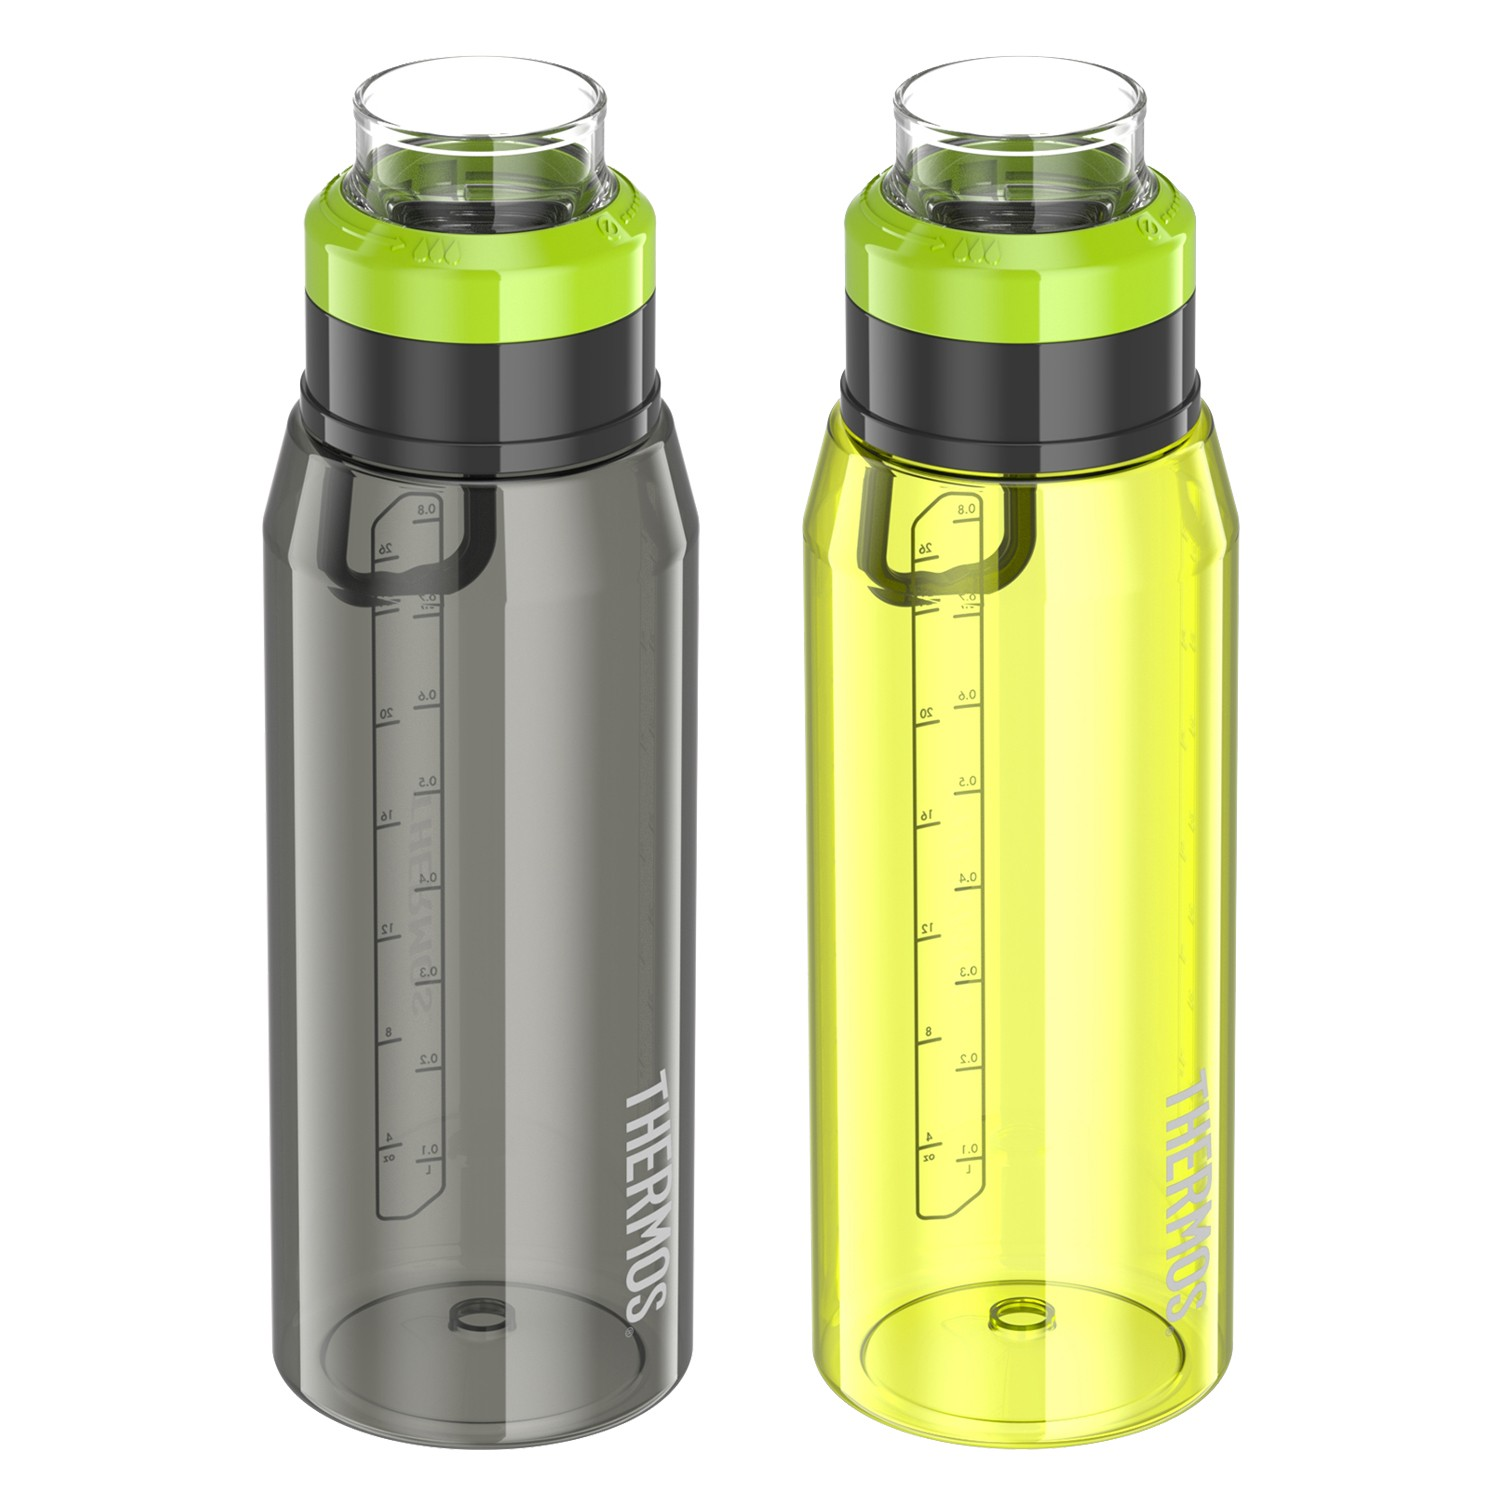 32OZ HYDRATION BOTTLE WITH 360 DEGREE DRINKING LID PAIR